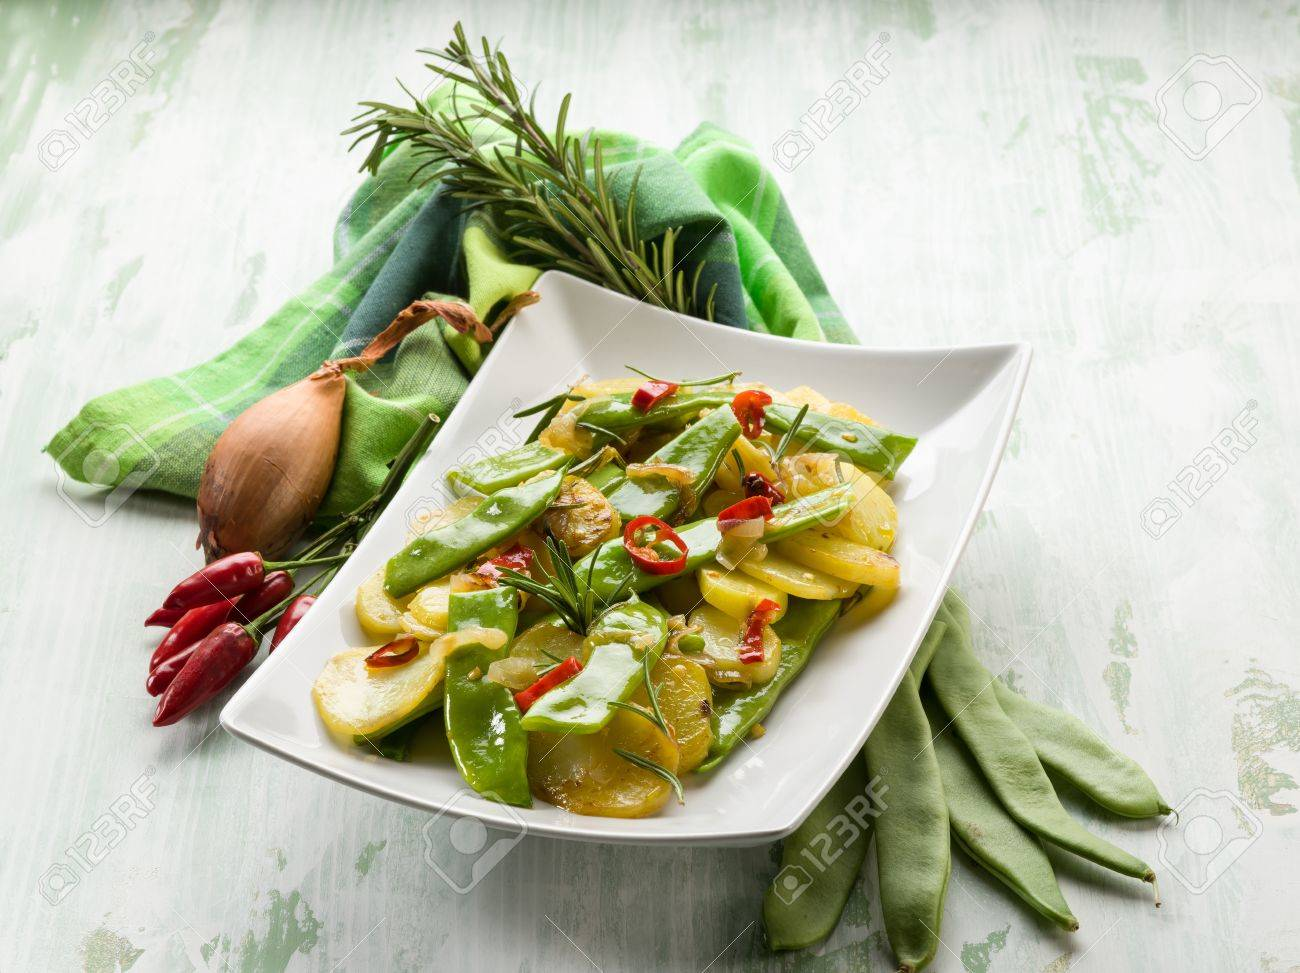 potatoes salad with flat green beans Stock Photo - 21583810